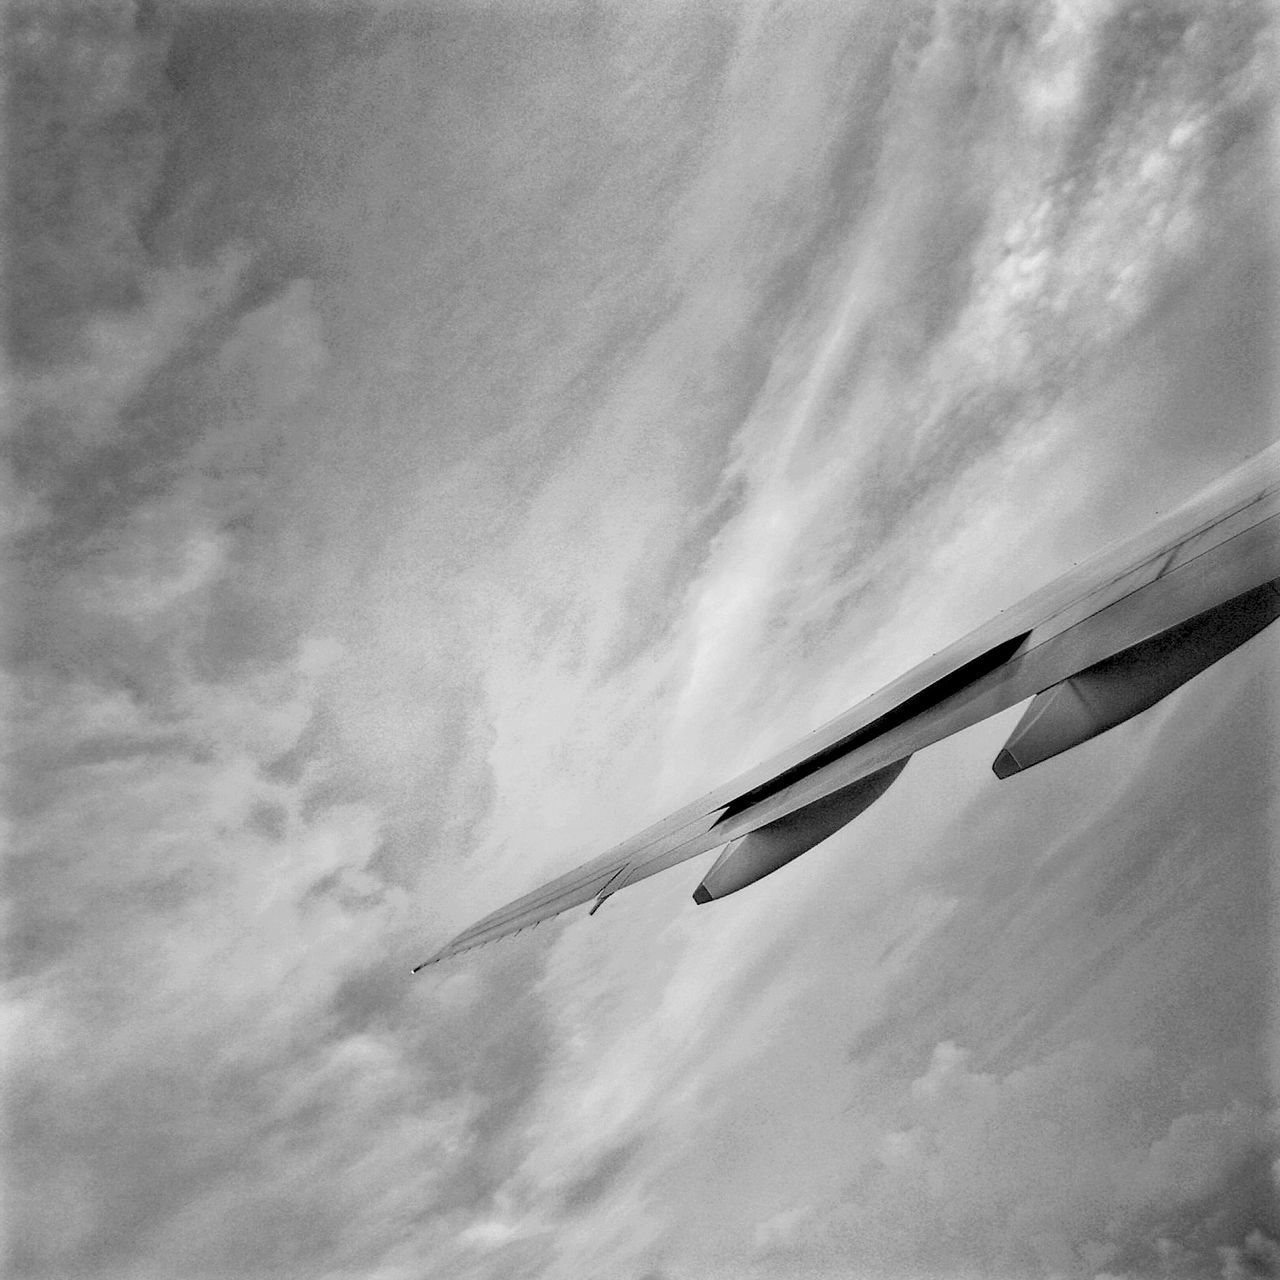 Flight Blackdrawing Bw Iphonephotography Blackandwhite EyeEm Clouds Flight Getty Images Gettyimages